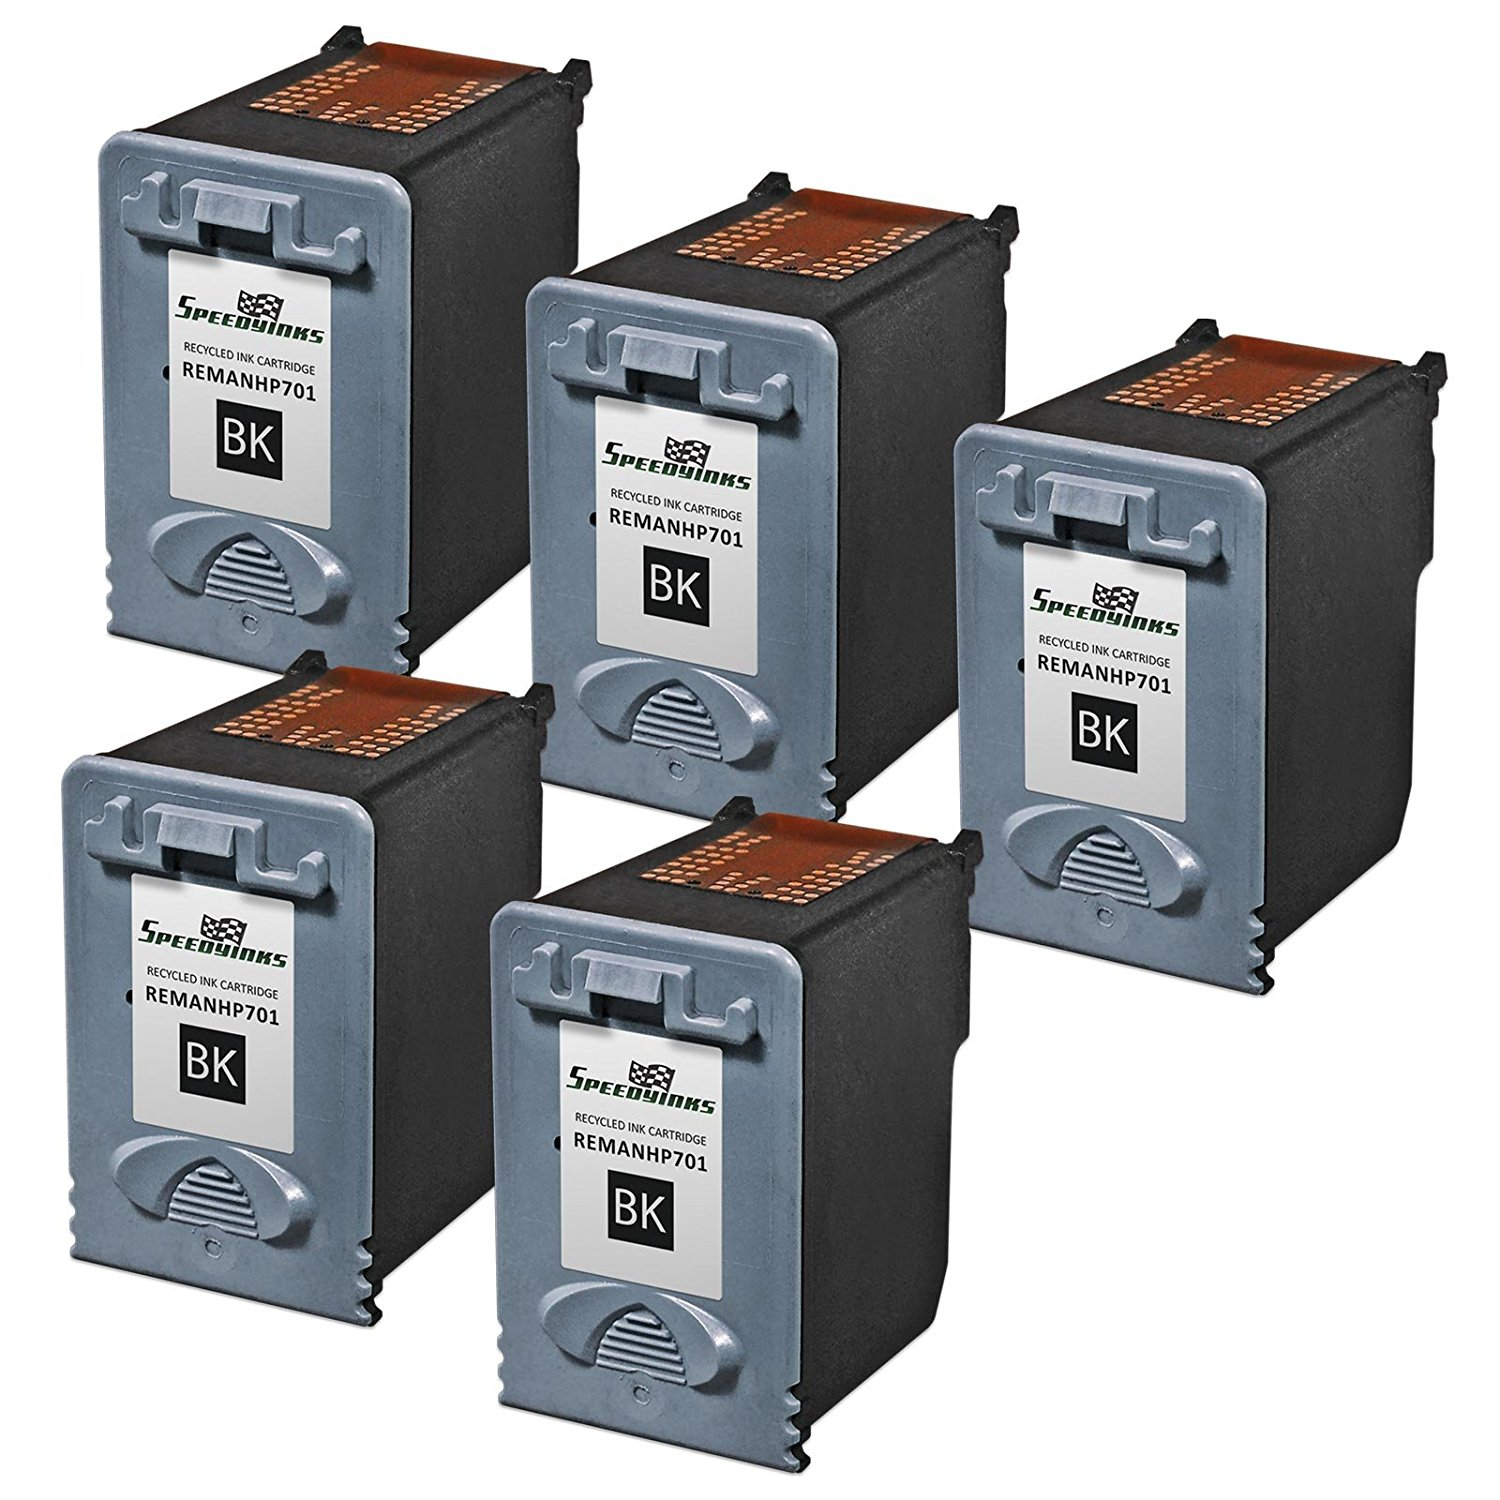 Get Quotations · Speedy Inks - 5pk Remanufactured Replacement for HP CC635A  701 Black Ink Cartridge for use in